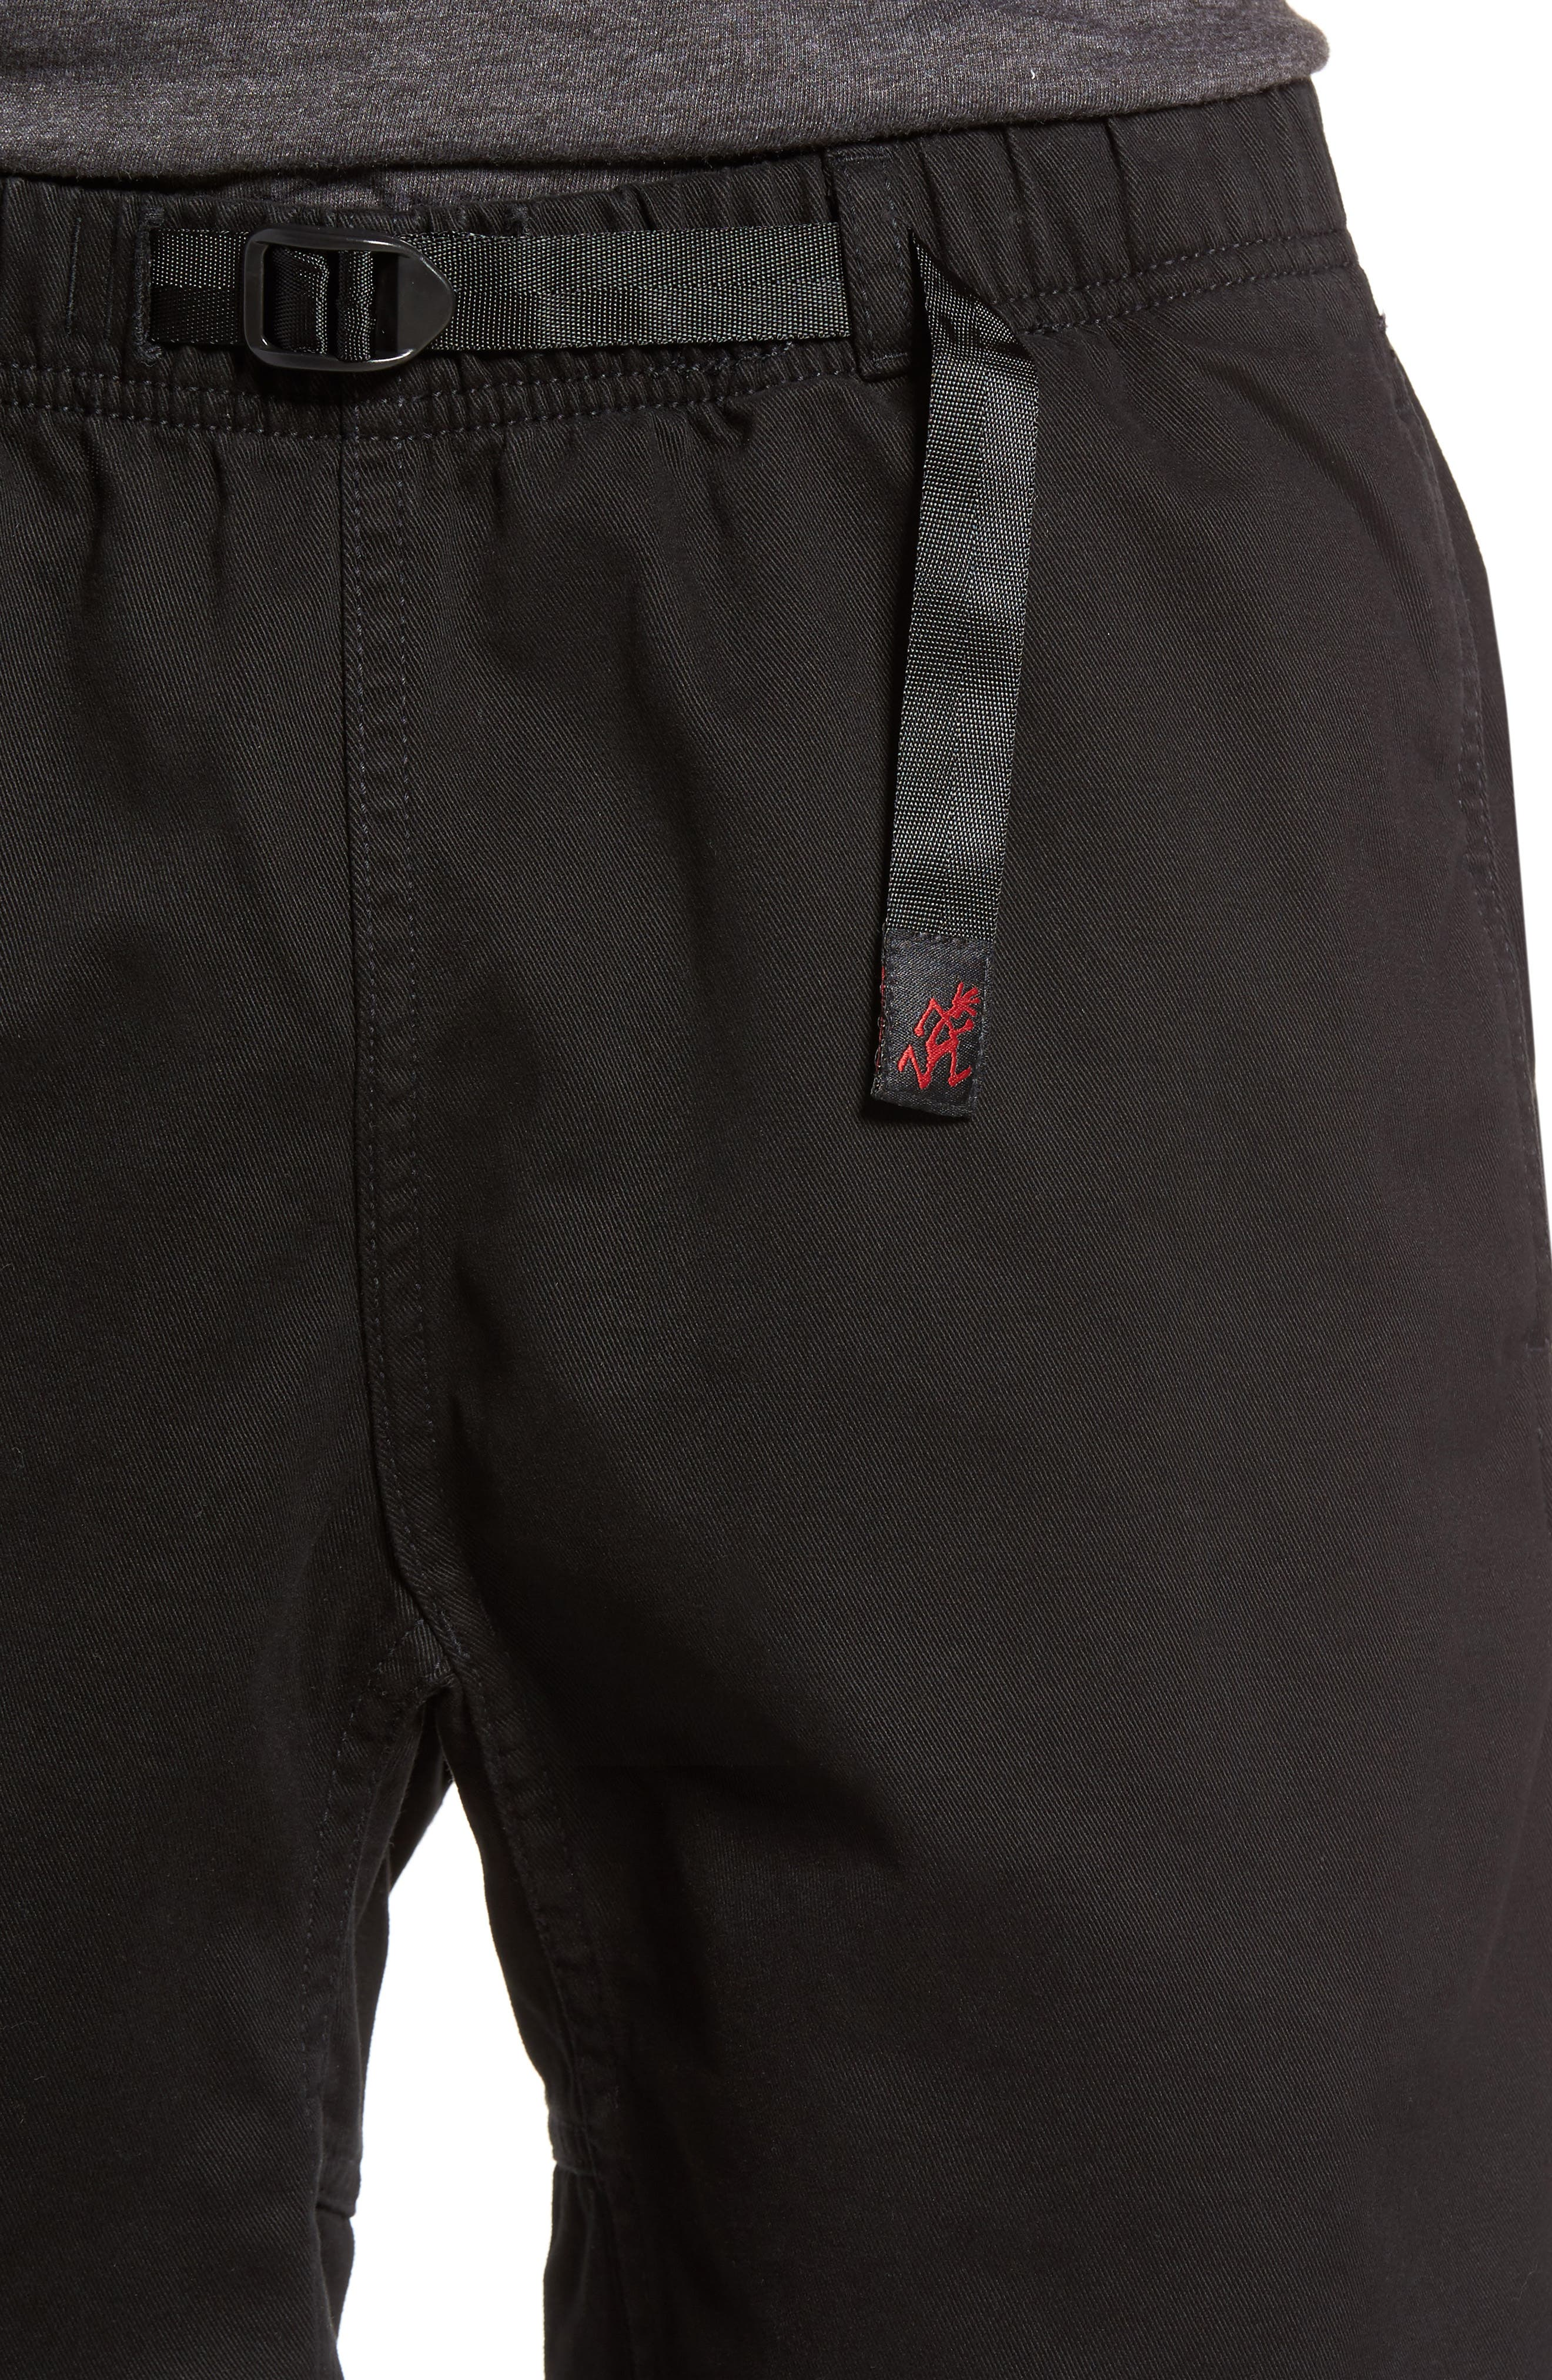 Rockin Sport Shorts,                             Alternate thumbnail 16, color,